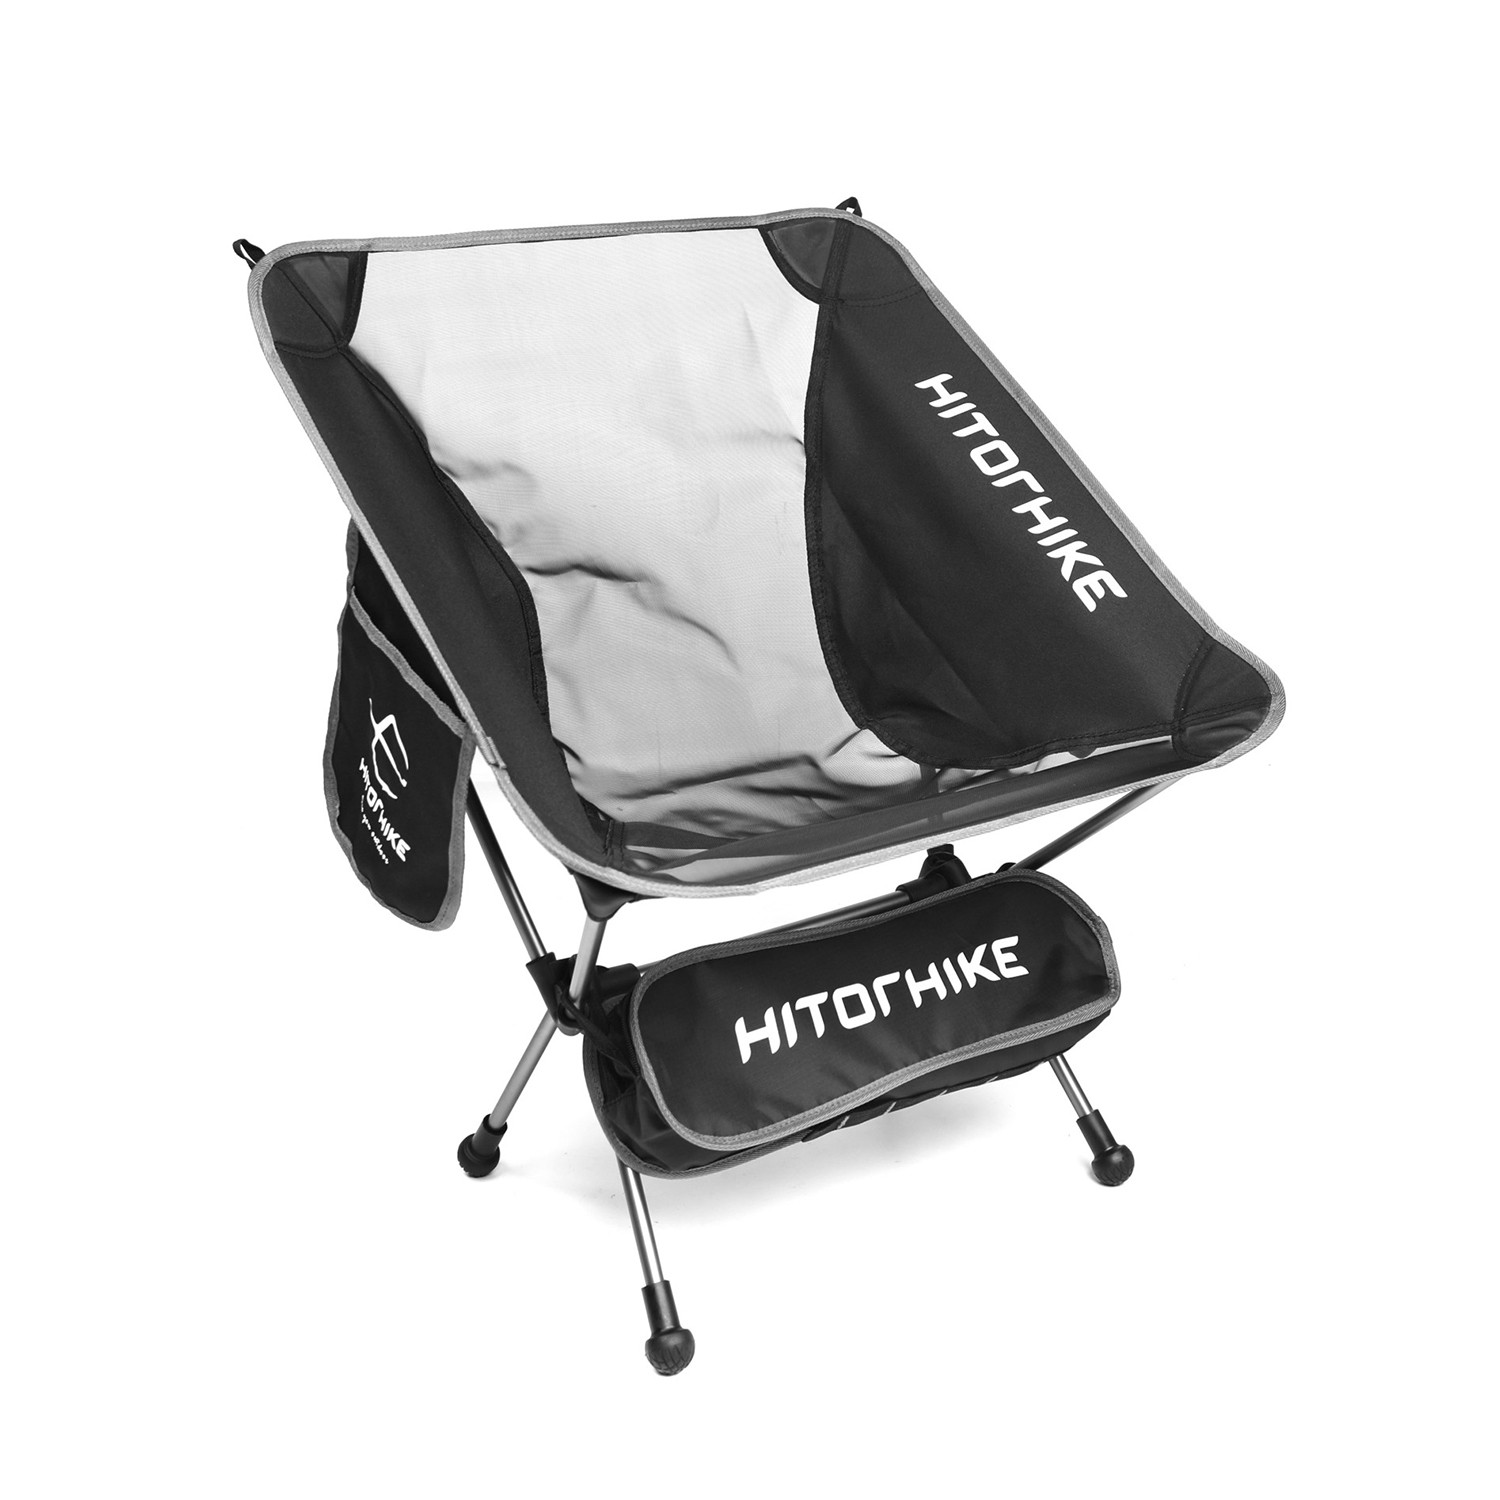 Hitorhike Travel Ultralight Folding Chair Superhard High Load Outdoor Camping Portable Beach Hiking Picnic Seat Fishing Chair Promote The Production Of Body Fluid And Saliva